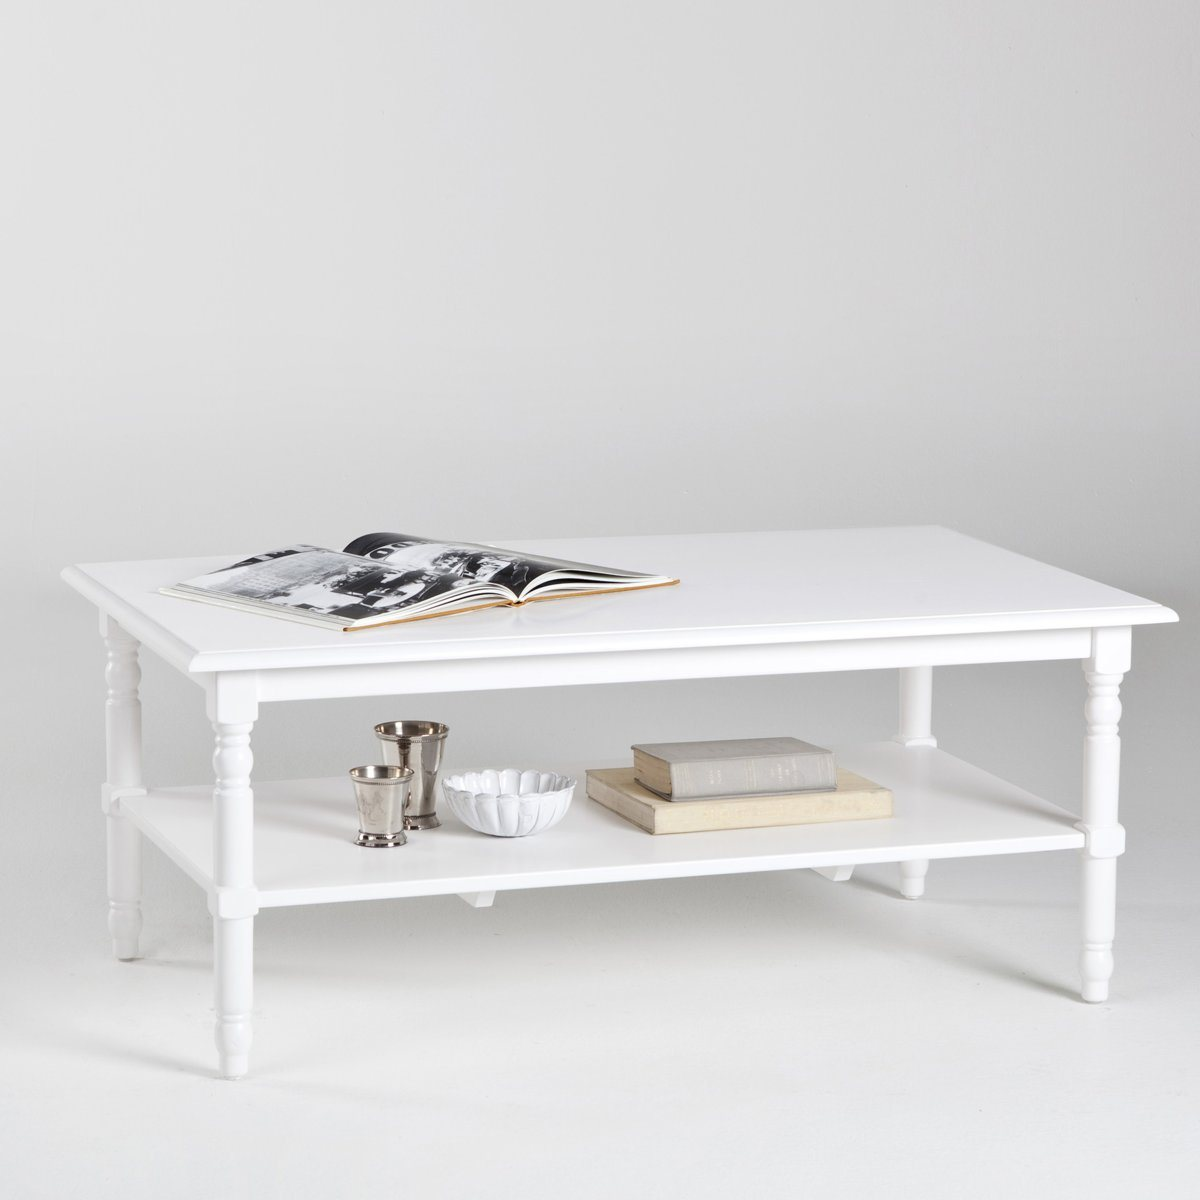 Table basse la redoute table basse authentic style for Table basse scandinave la redoute